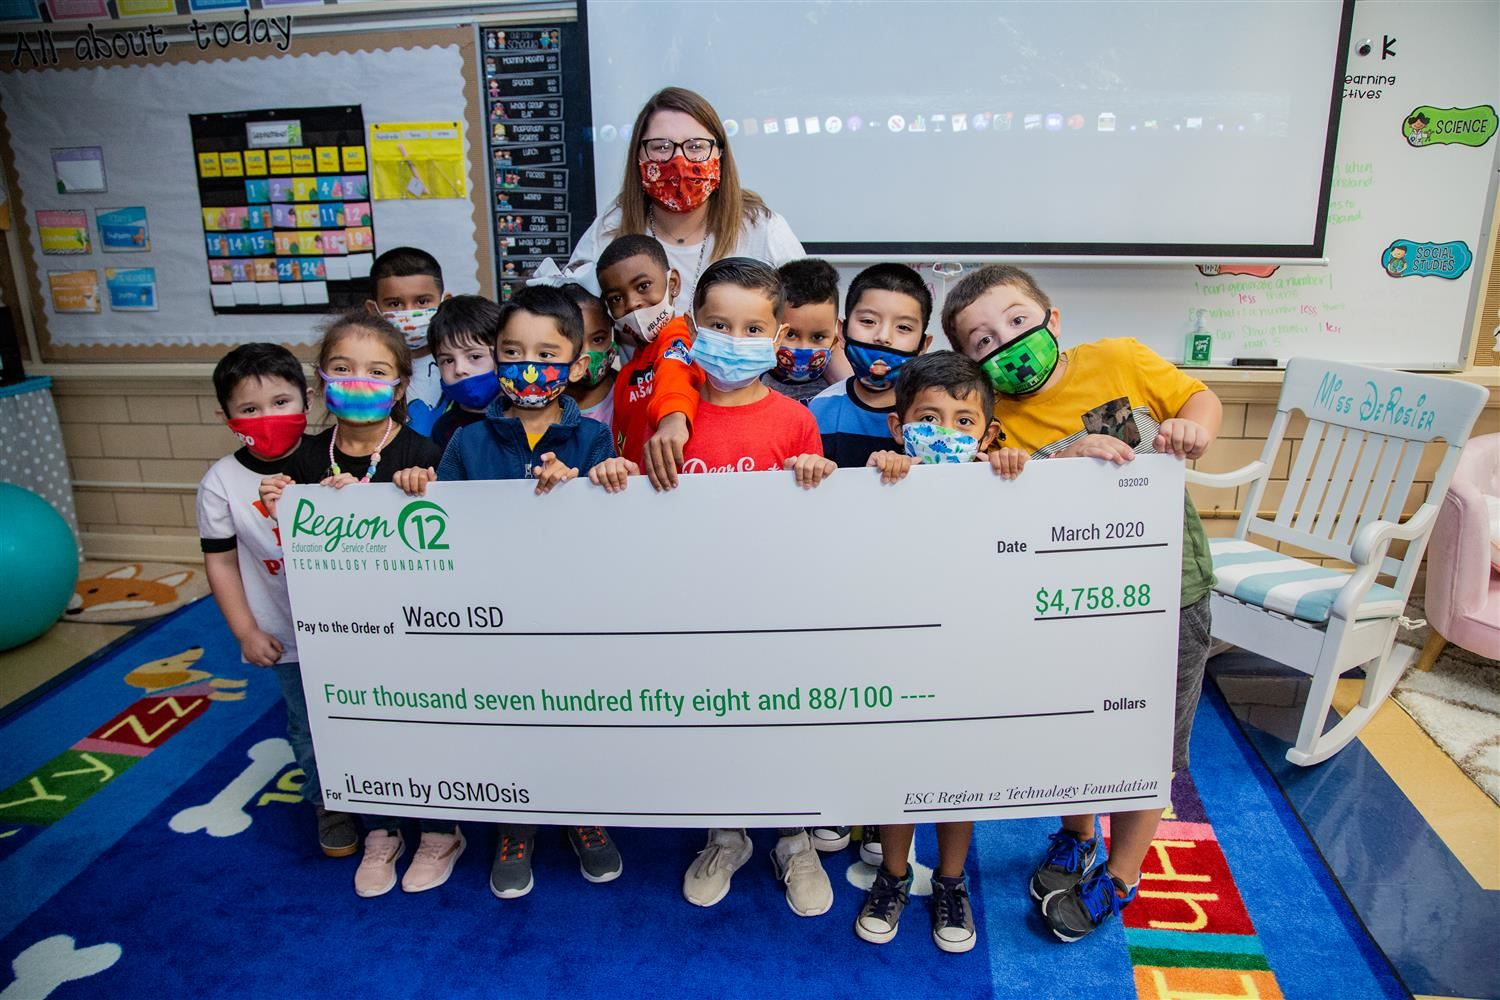 ESC Region 12 Technology Foundation awards grant to Kendrick Elementary teacher